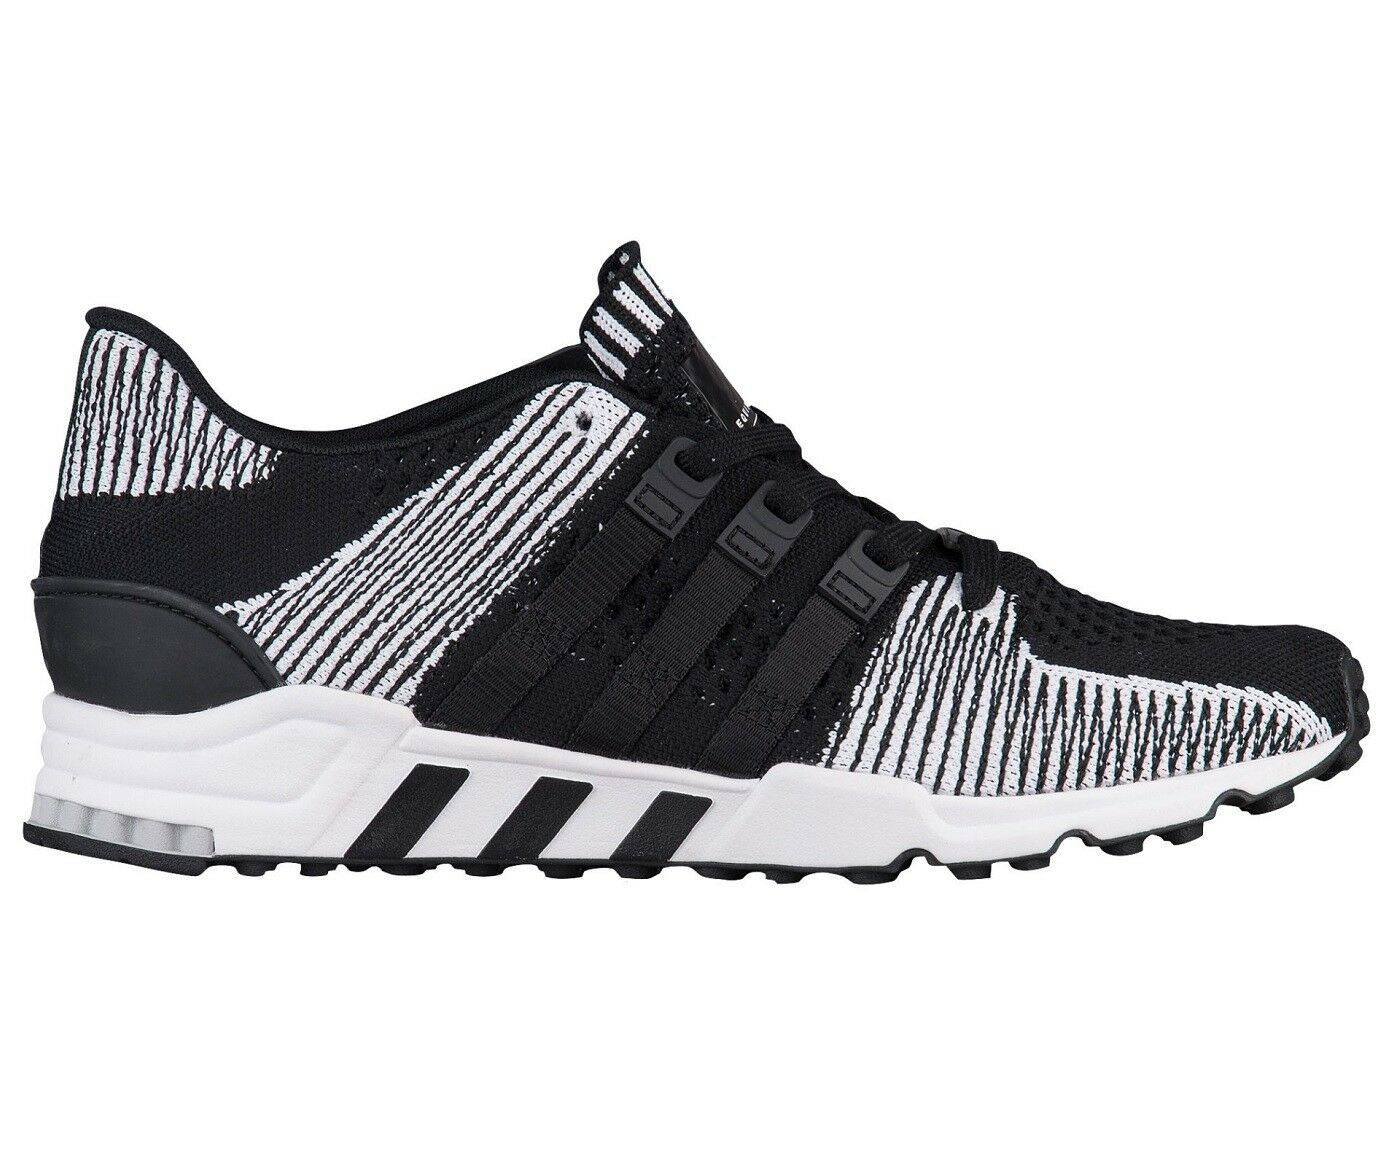 Adidas EQT Support RF Primeknit Mens BY9689 Black White Running Shoes Size 9.5